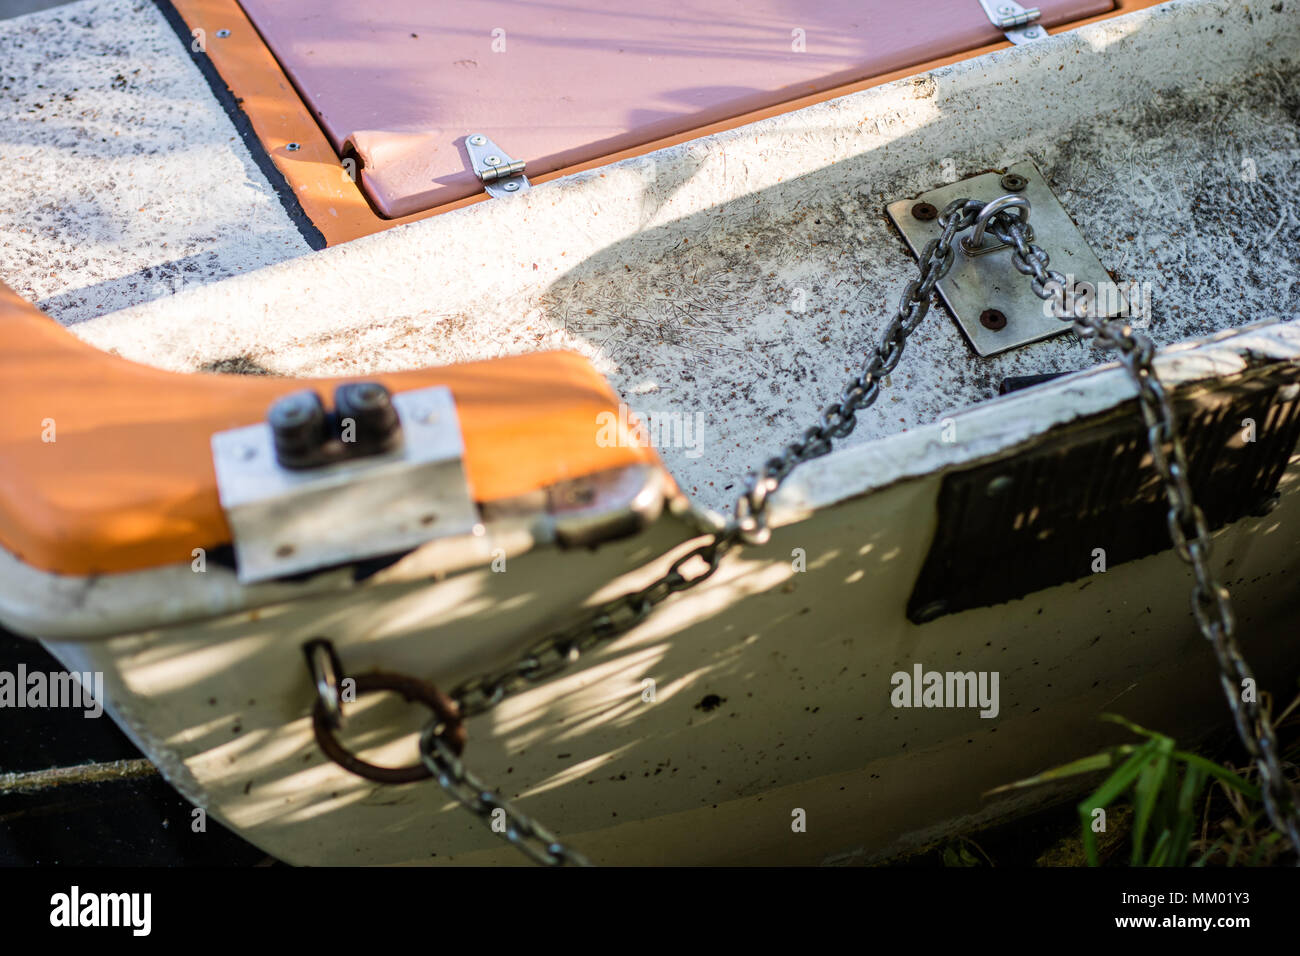 Capstan on a small sailing boat. Equipment for a sailing boat floating in inland waters. Season of the spring. - Stock Image